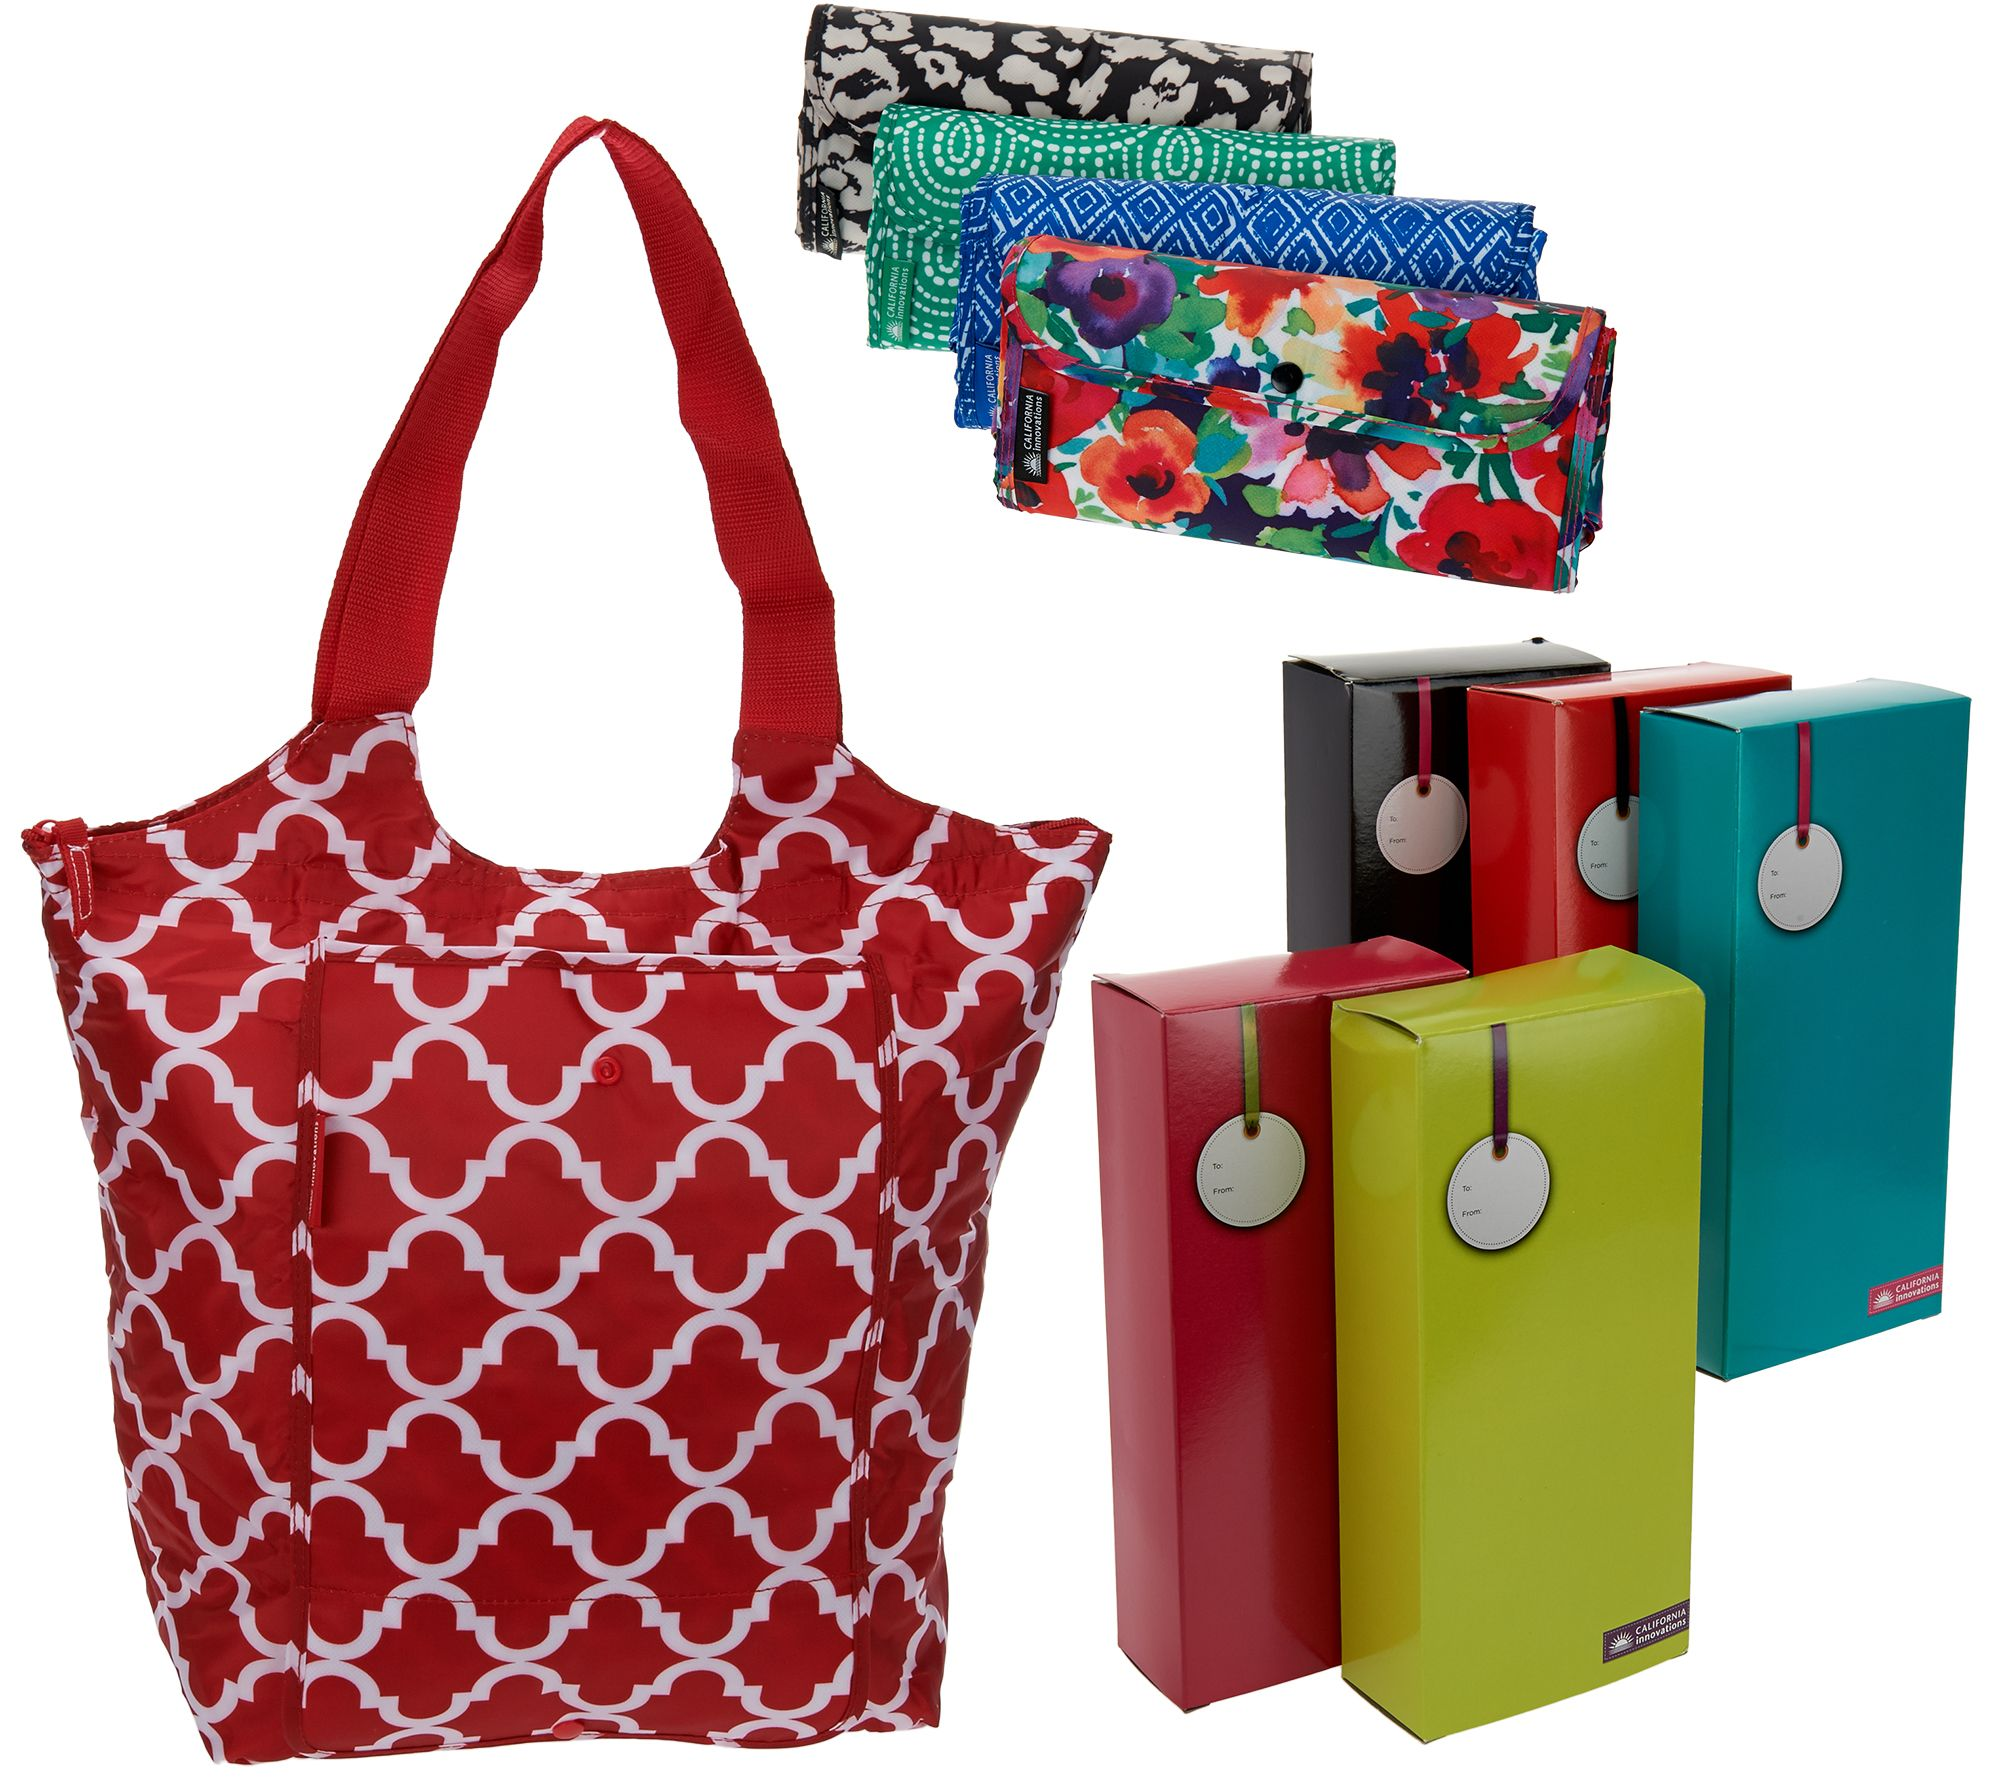 California Innovations S 5 Insulated Totes With Gift Boxes